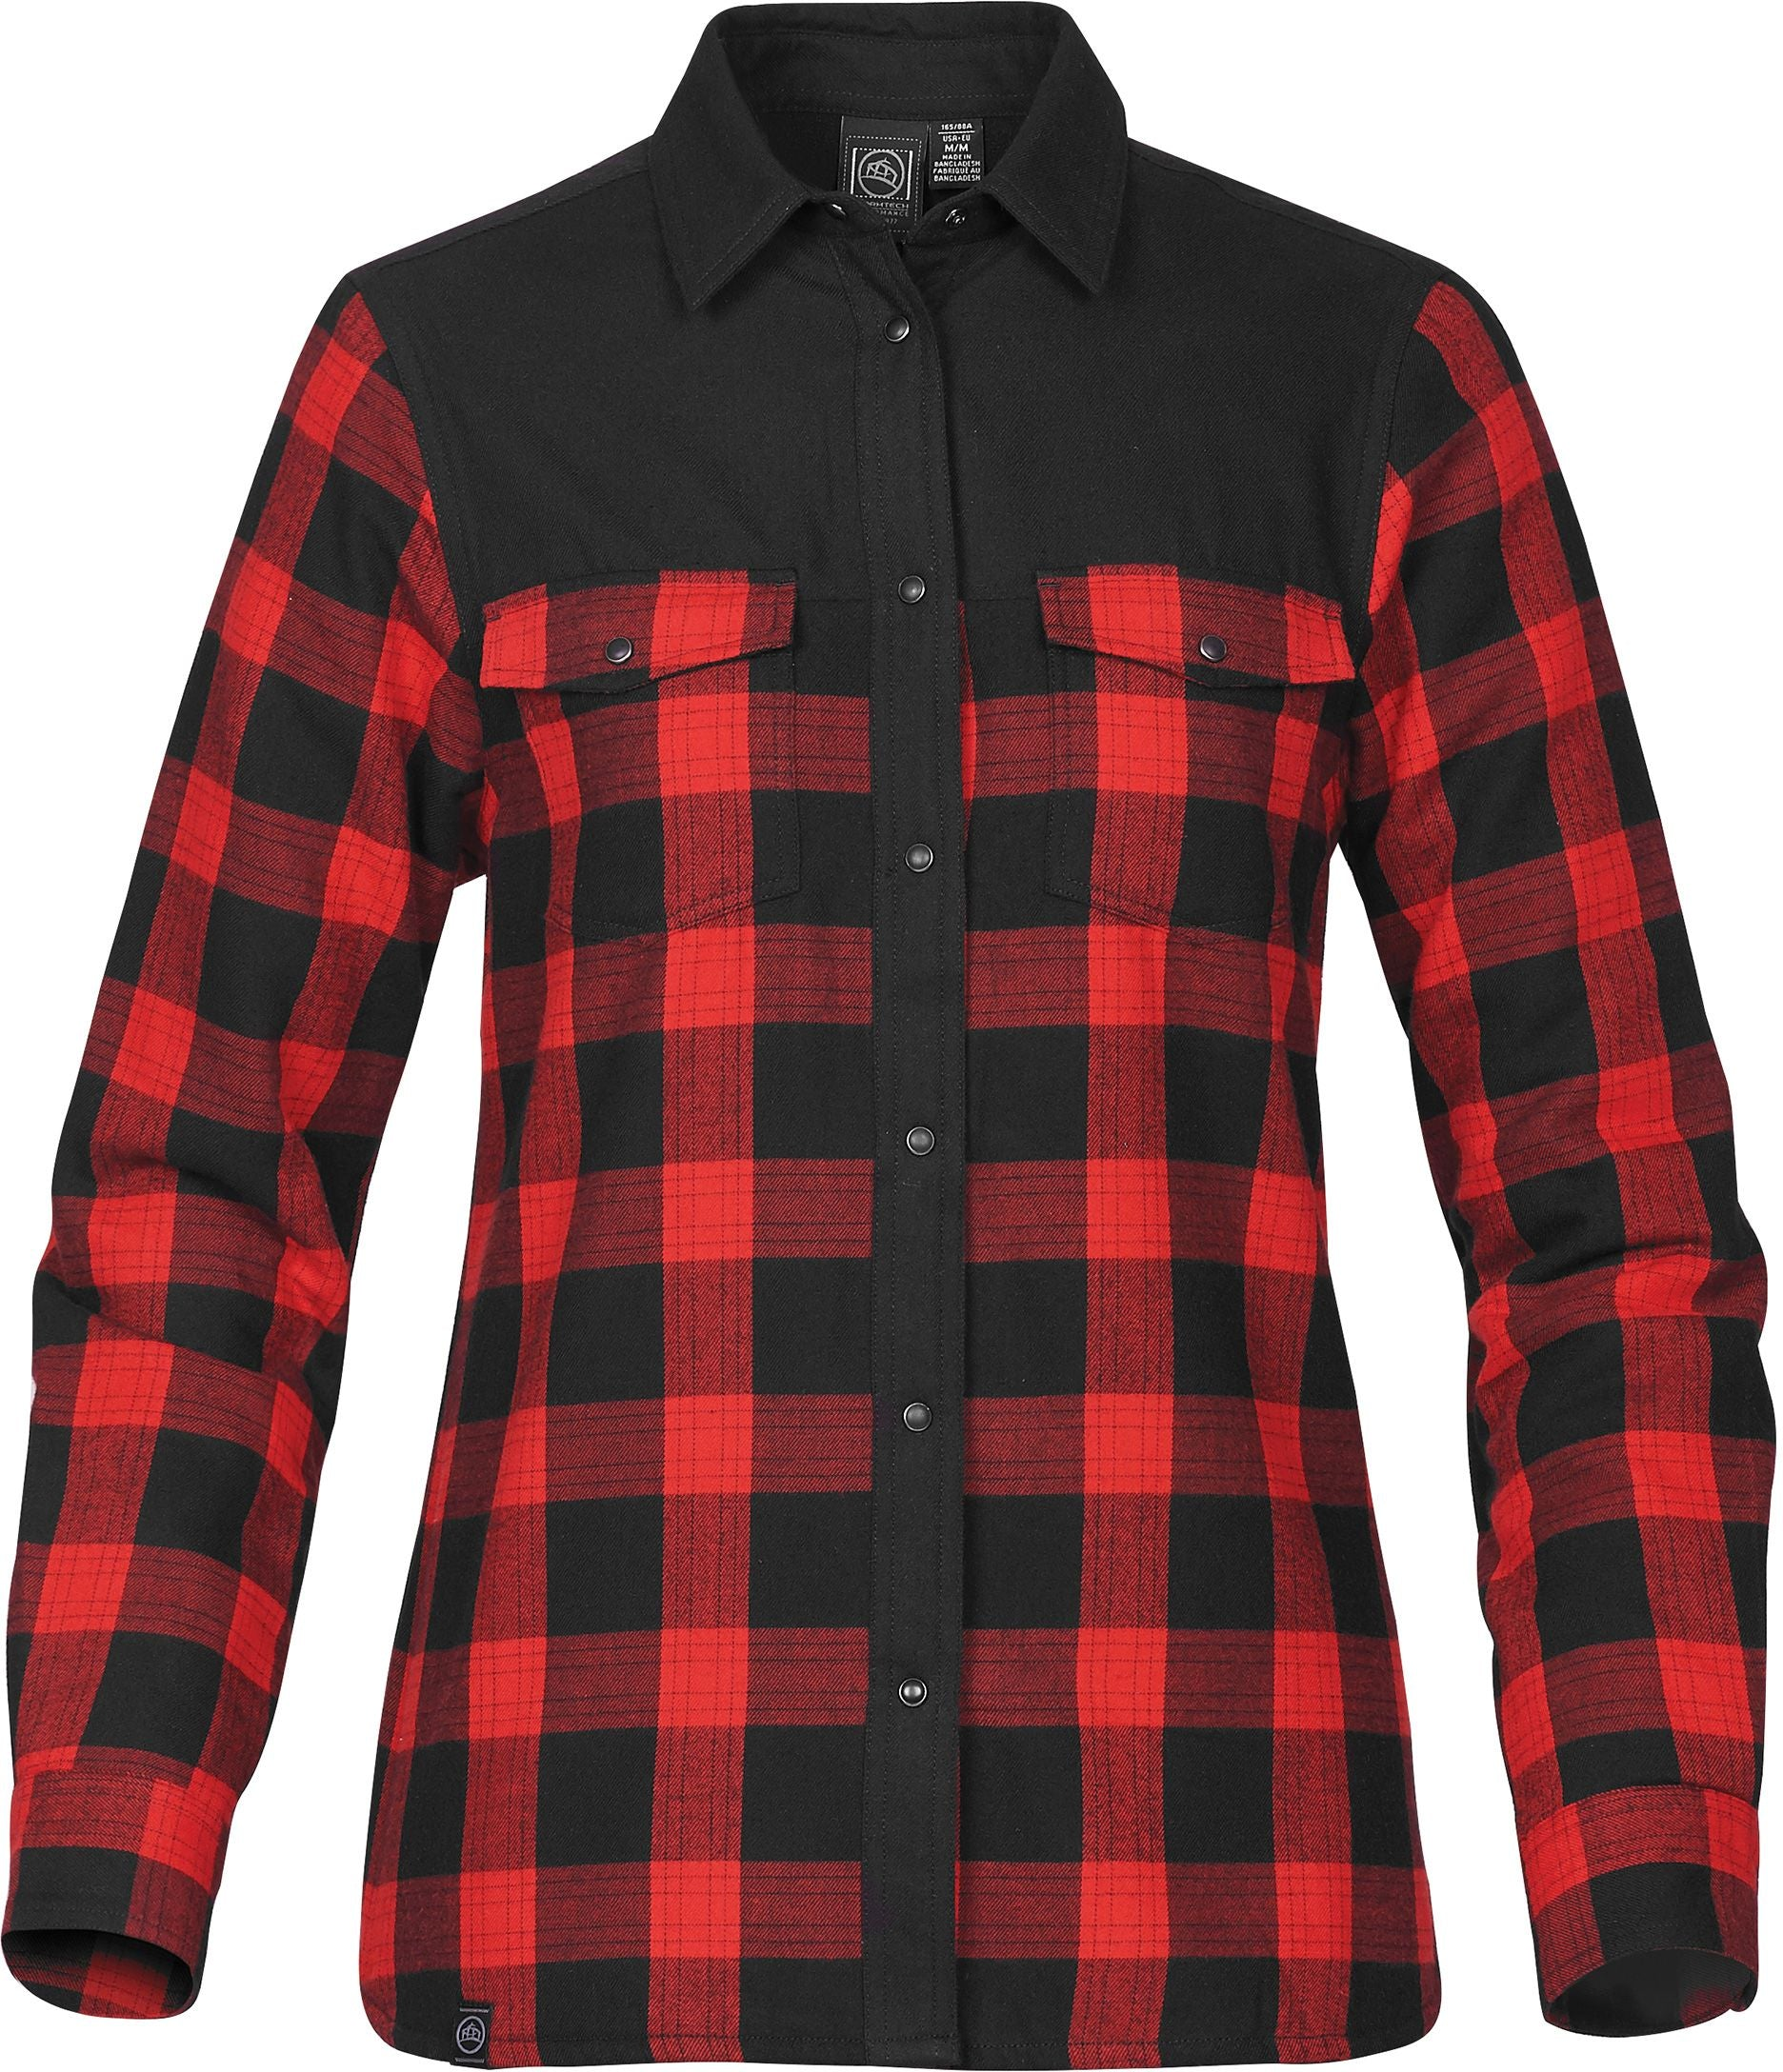 STORMTECH LADIES LOGAN THERMAL L/S PLAID SHIRT